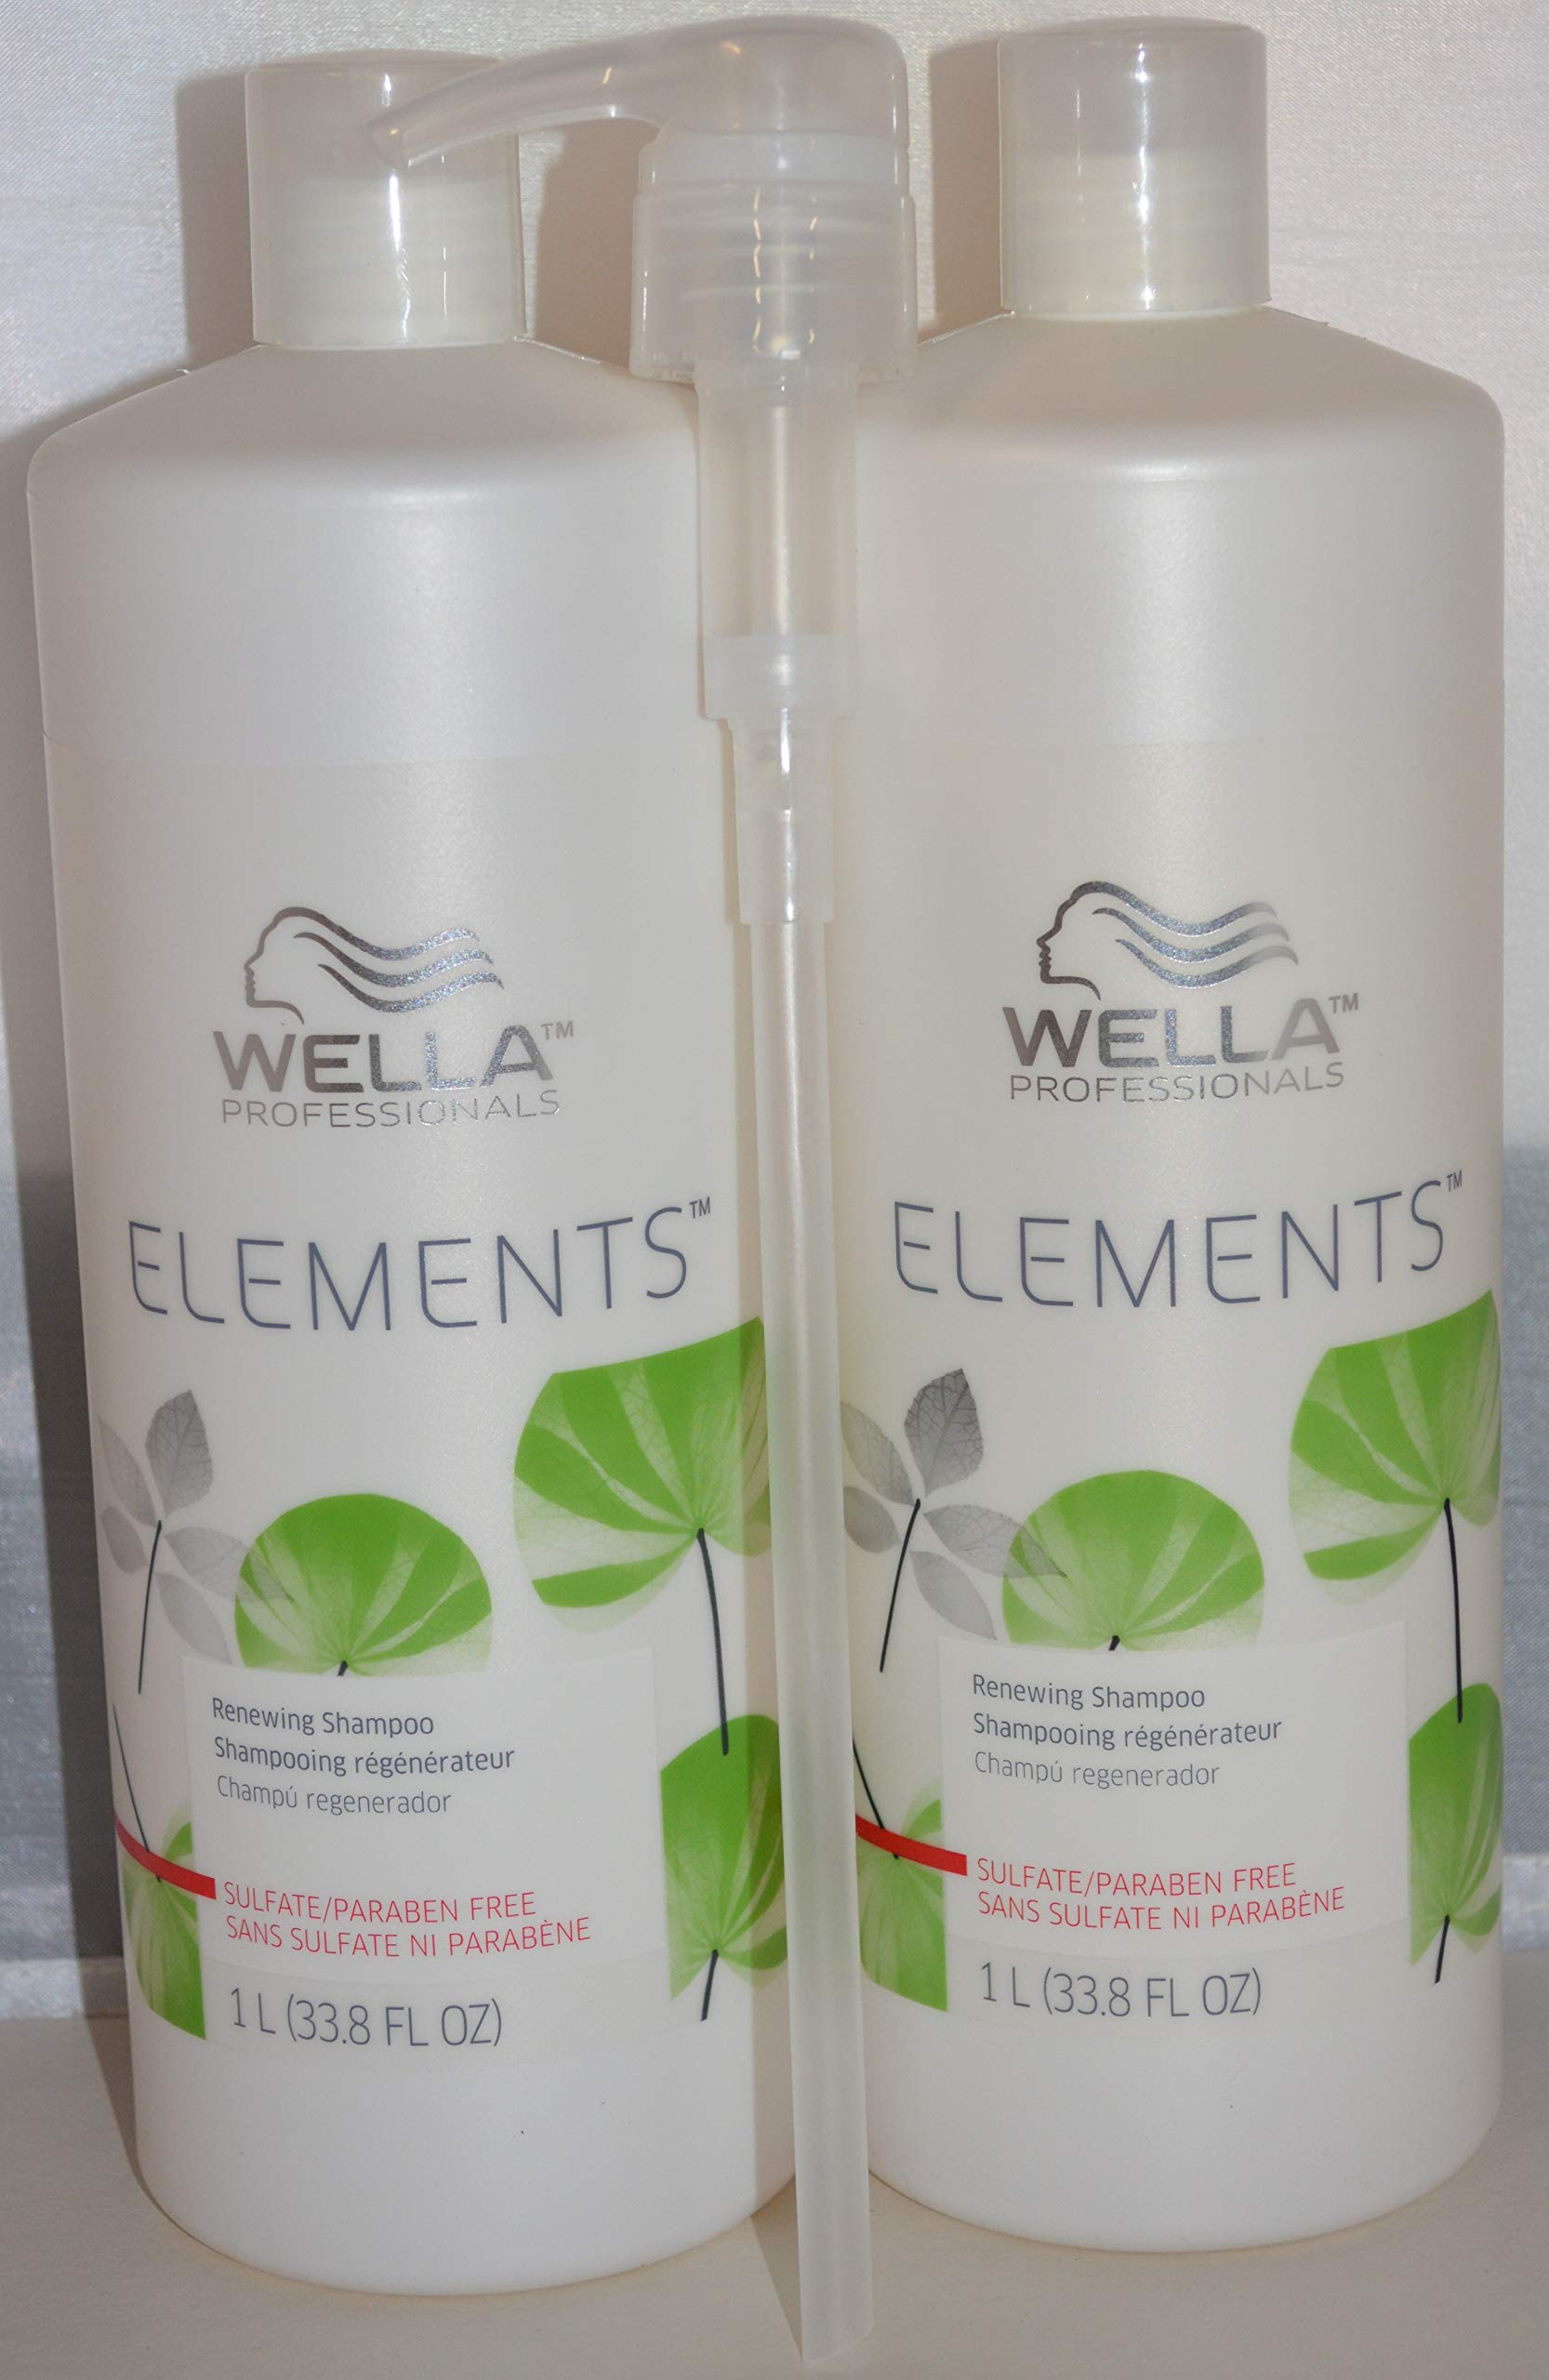 Wella Elements Renewing Shampoo - Paraben Free 33.8oz (2 pack) Includes 1 Free Pump by Generic